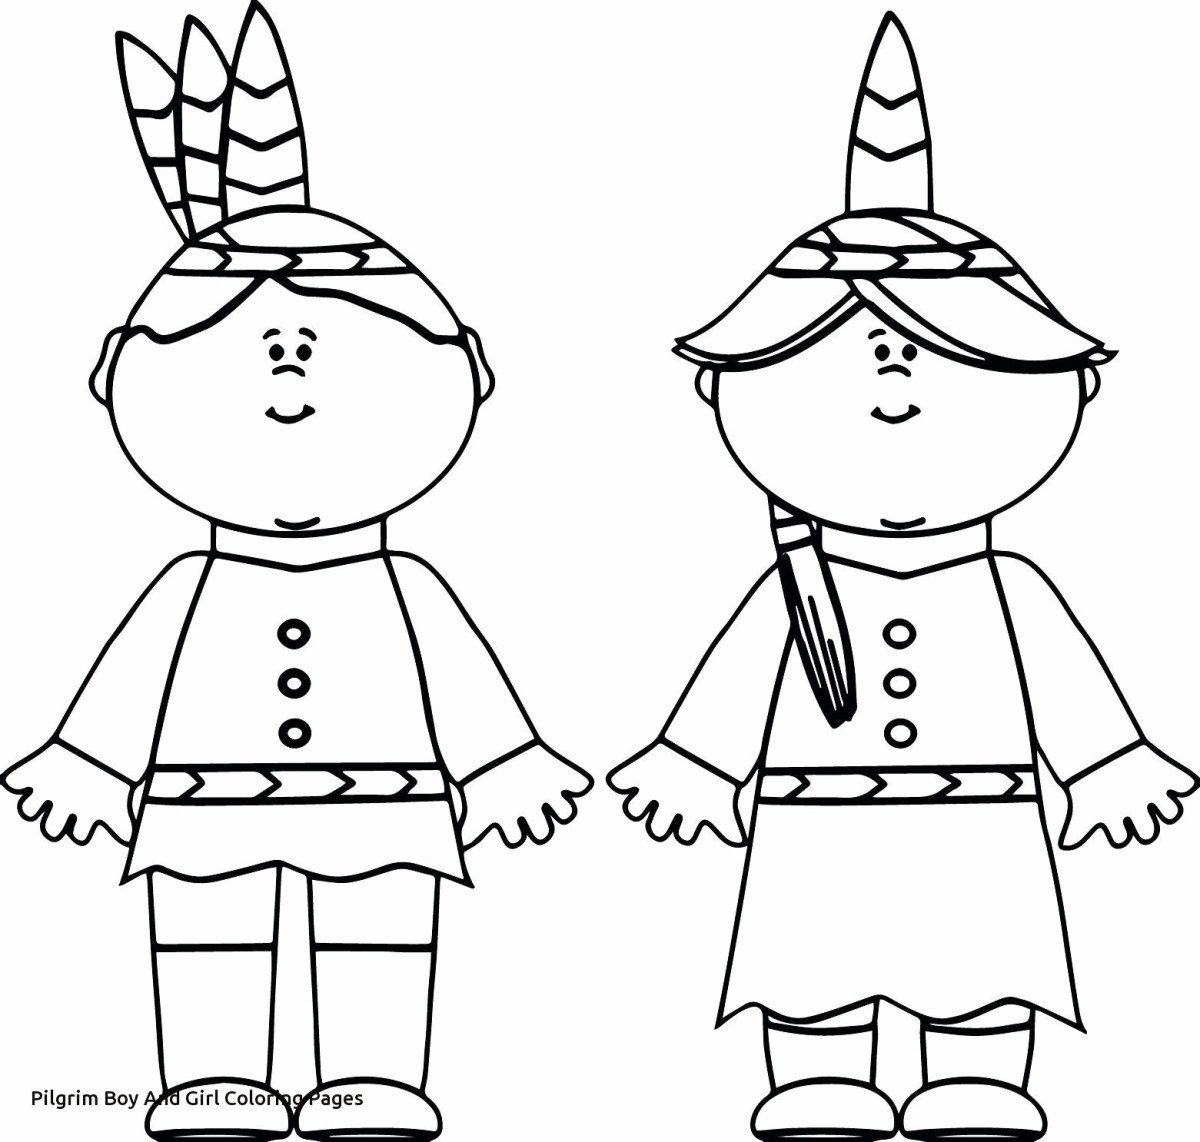 ManyHoops.com - COLORING PAGES - THANKSGIVING | 1142x1200